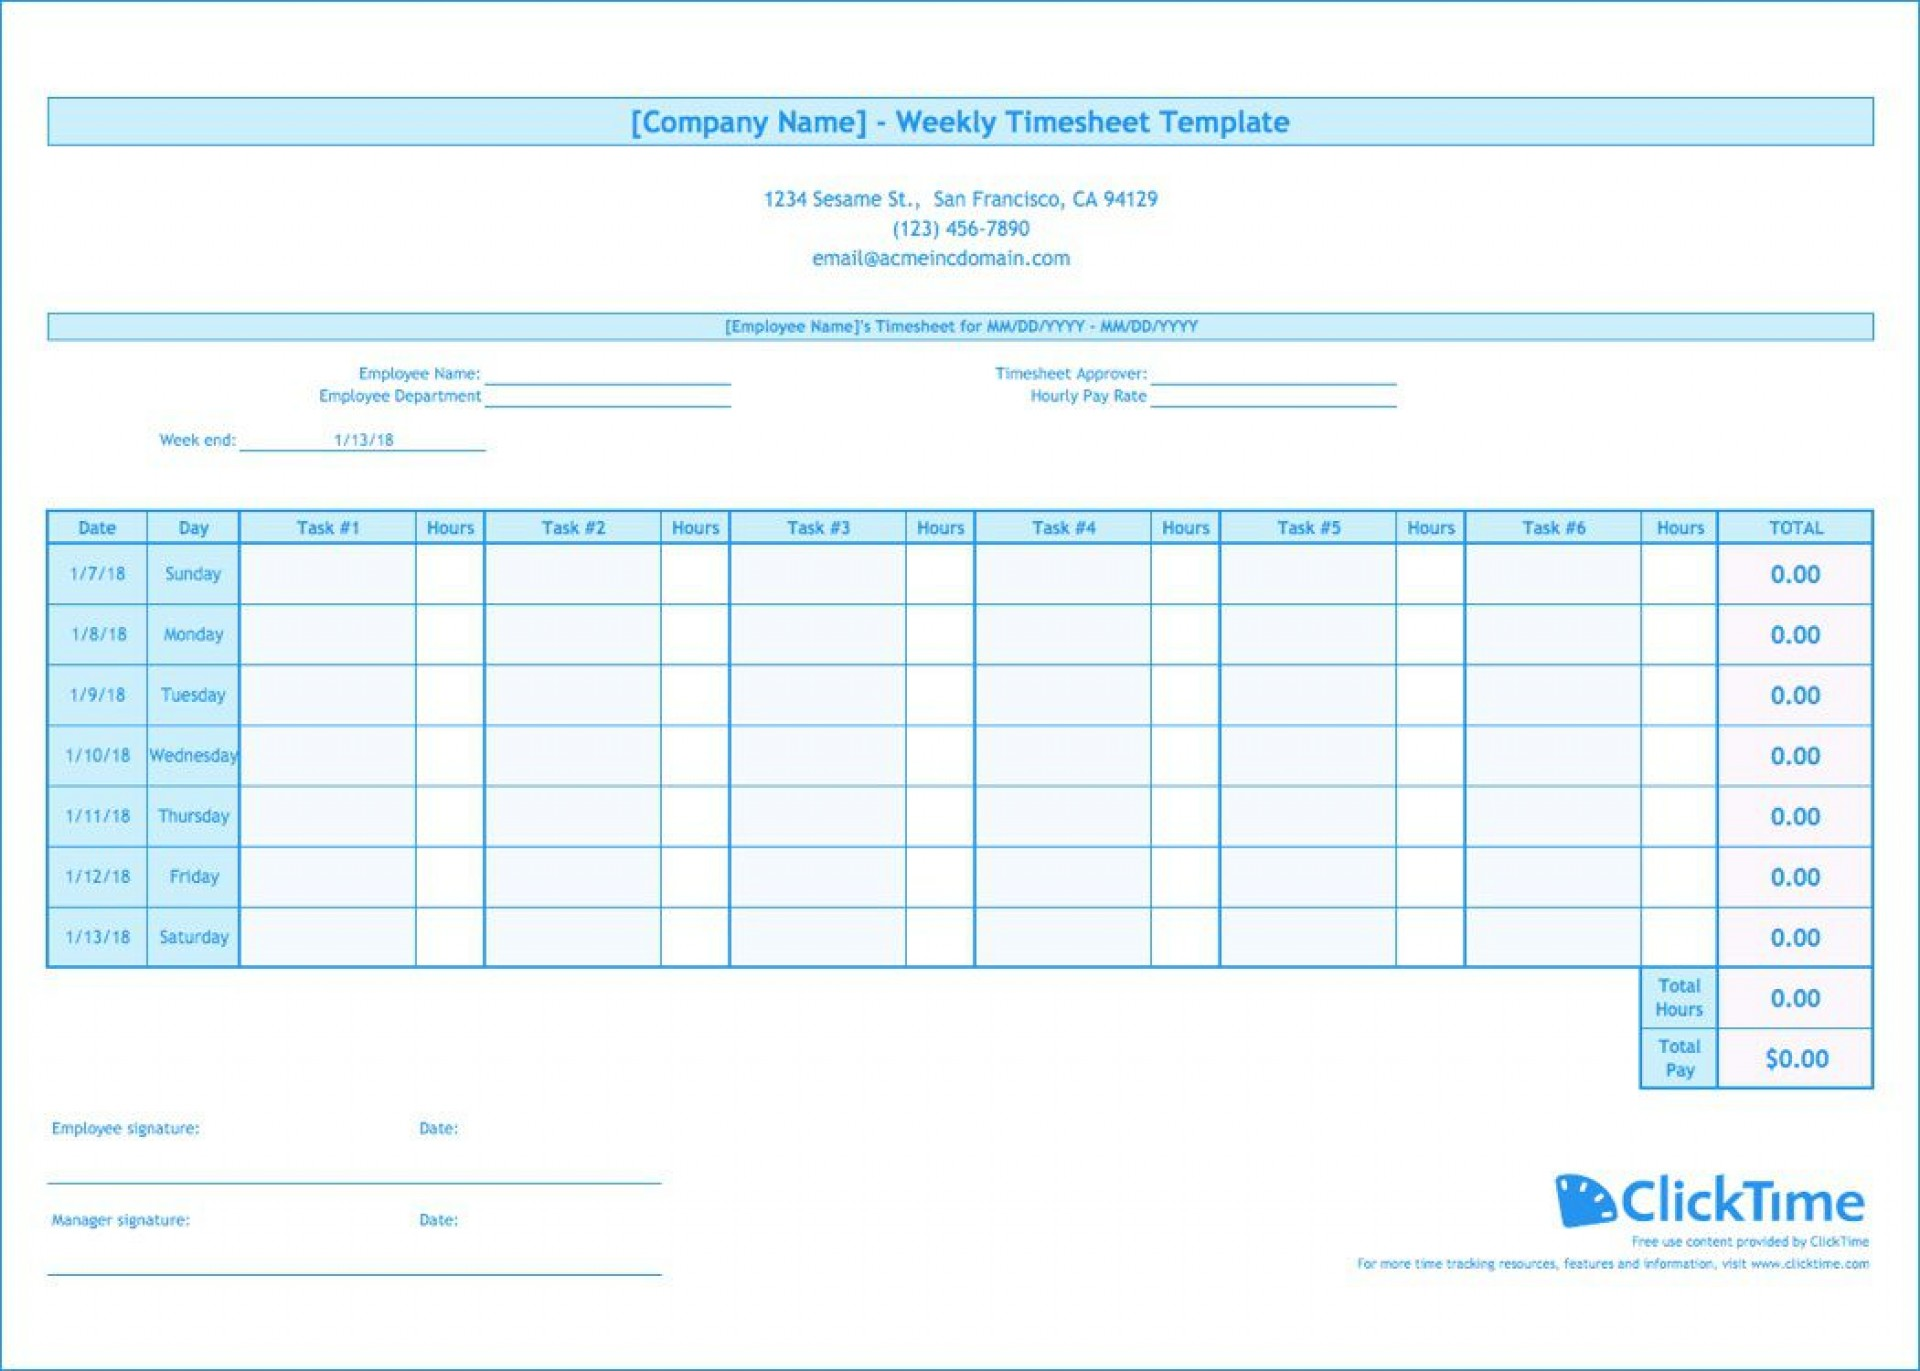 009 Wonderful Free Weekly Timesheet Template Image  For Multiple Employee Biweekly Excel With Formula1920